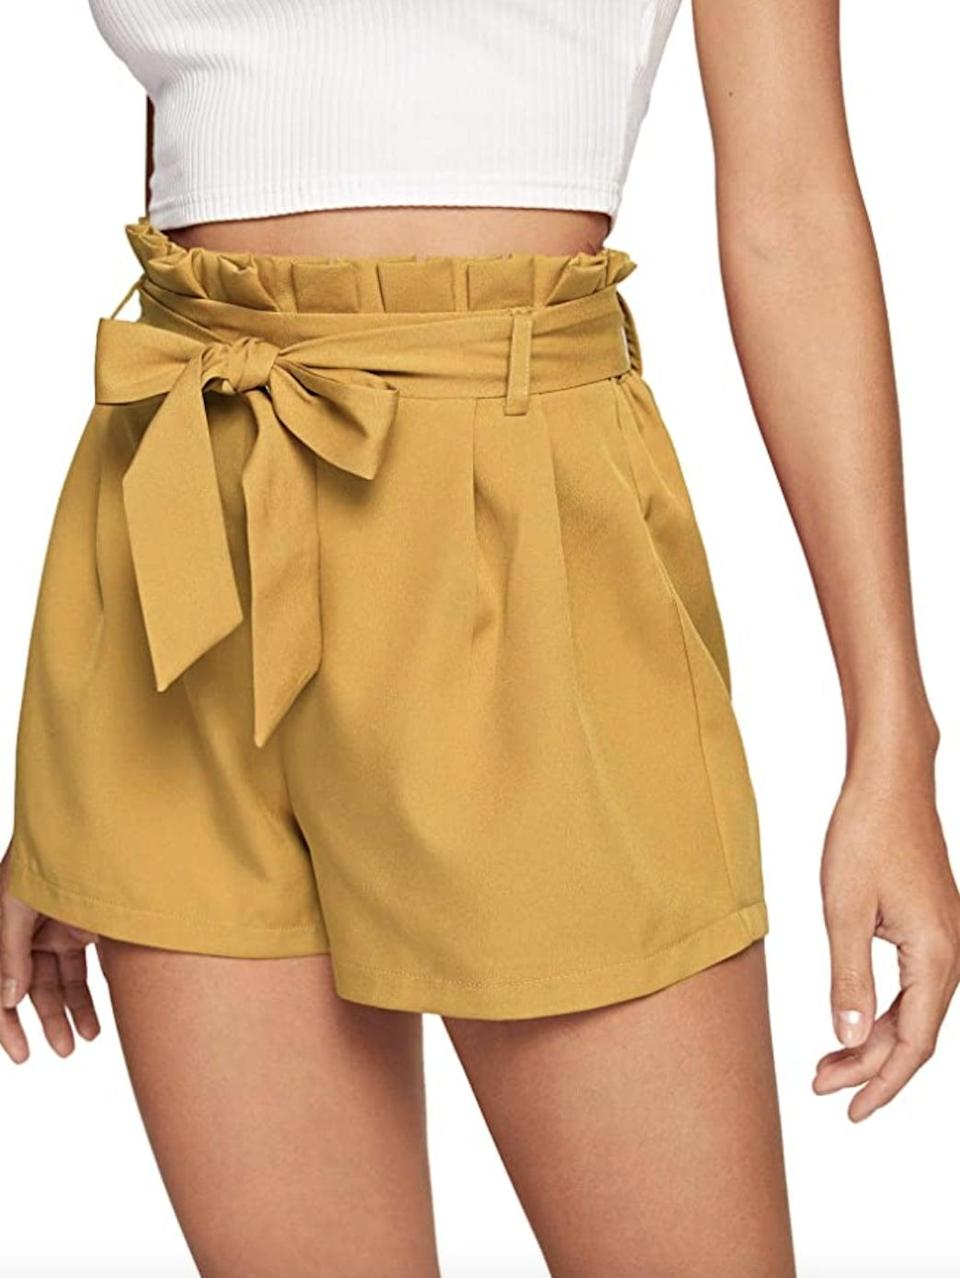 <p>These <span>SweatyRocks Elastic Shorts</span> ($16 - $20) will provide ample support around the waist, for maximum comfort. </p>